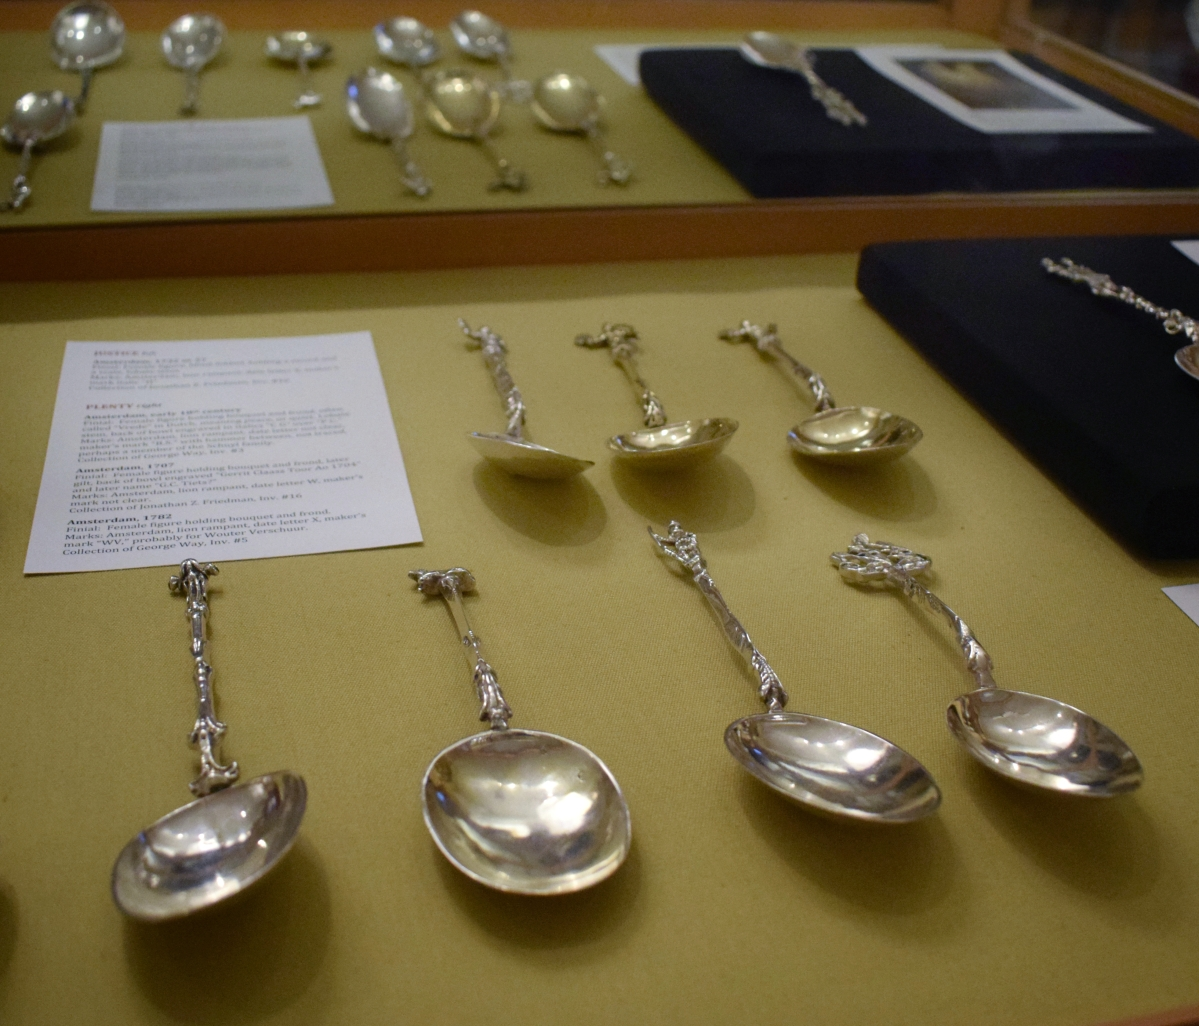 A recent exhibit at Historic Huguenot featured Way's collection of Dutch spoons.